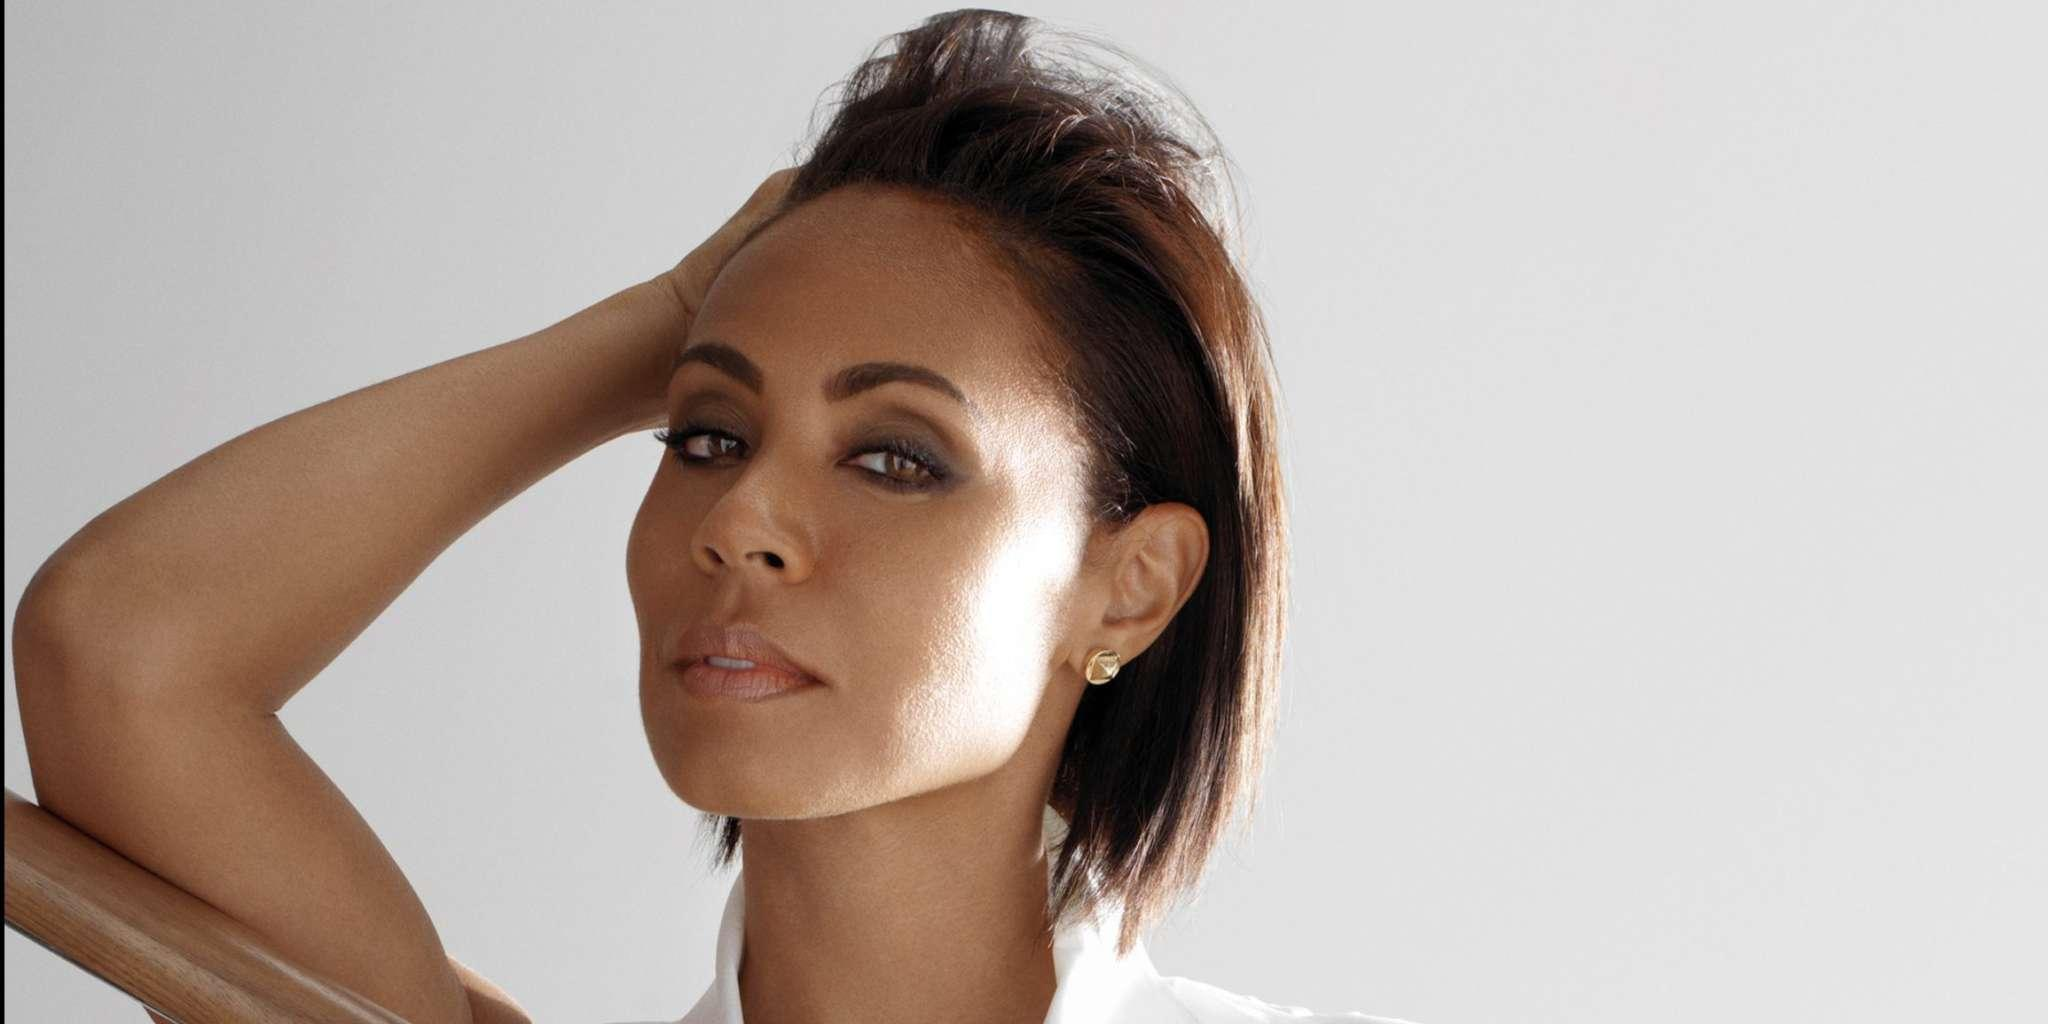 Jada Pinkett Smith Stuns In Bathtub Pic With No Makeup On But She Thinks She's Found A Huge Flaw About Her Eyes!